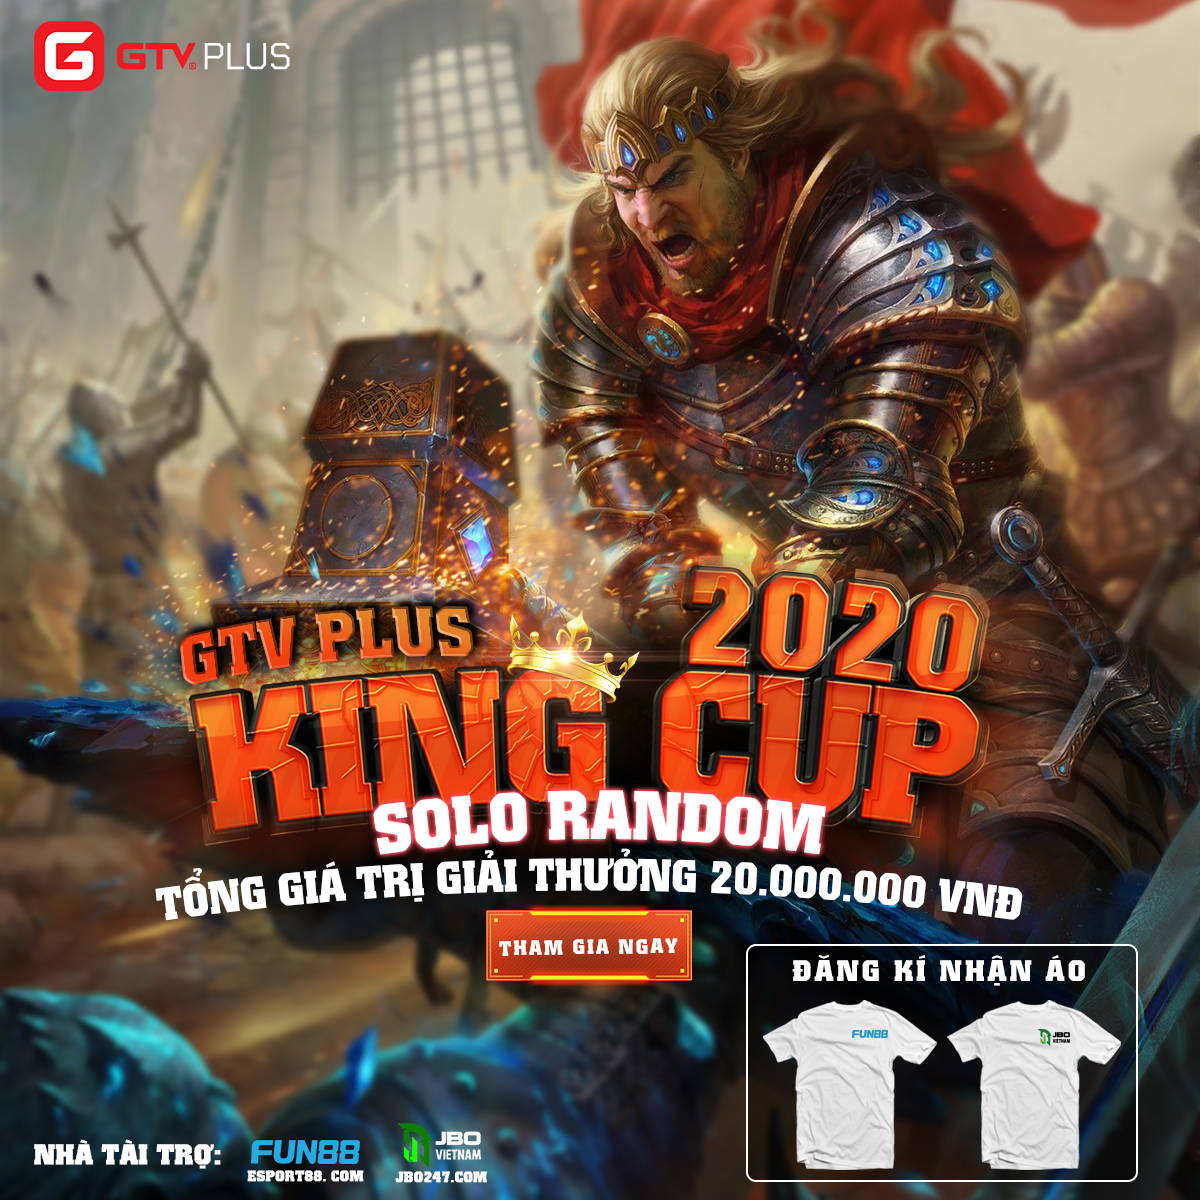 GTV PLUS KING CUP 2020